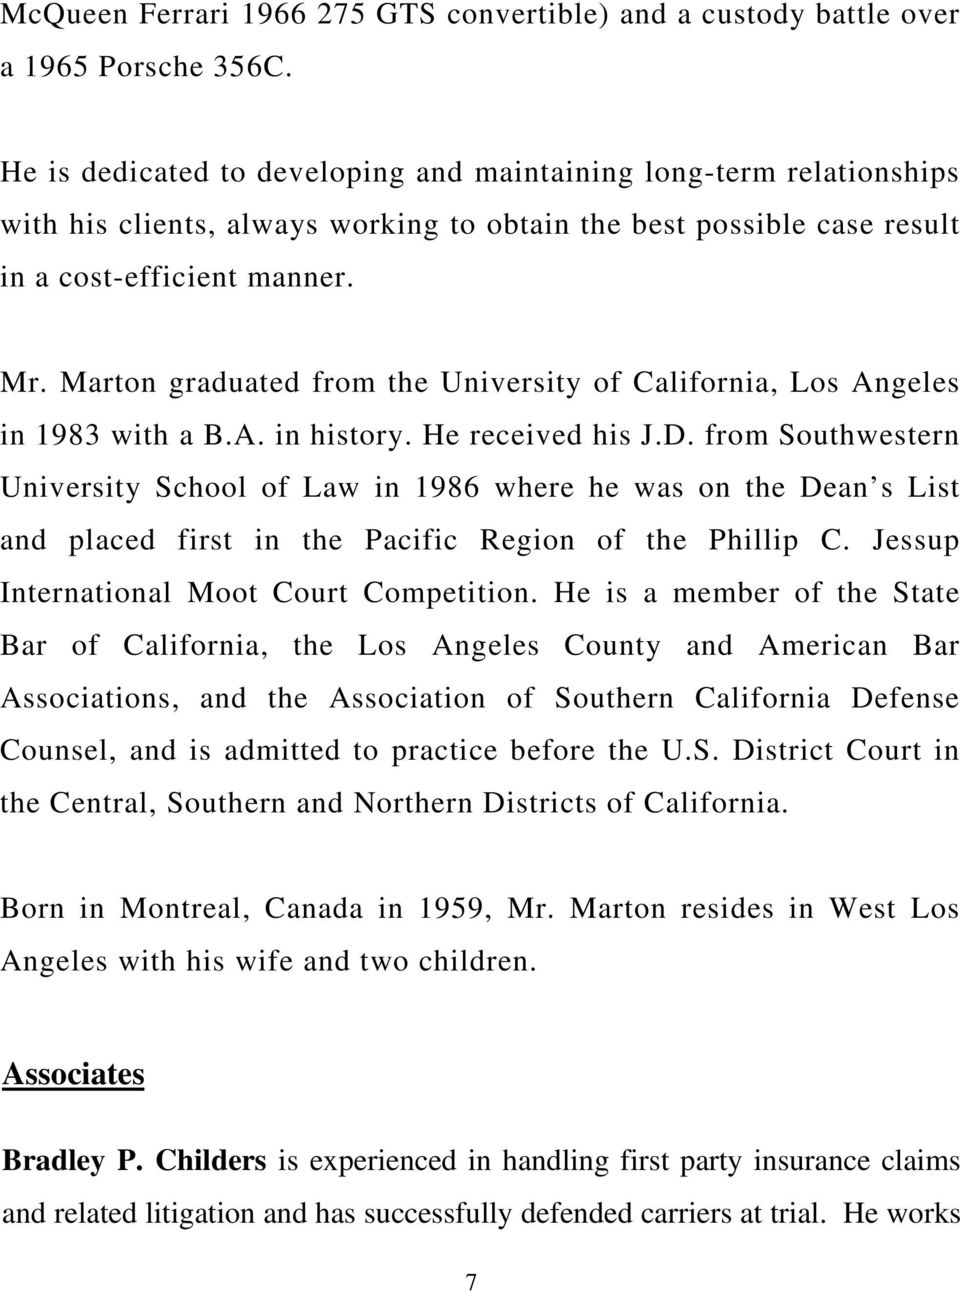 Marton graduated from the University of California, Los Angeles in 1983 with a B.A. in history. He received his J.D.